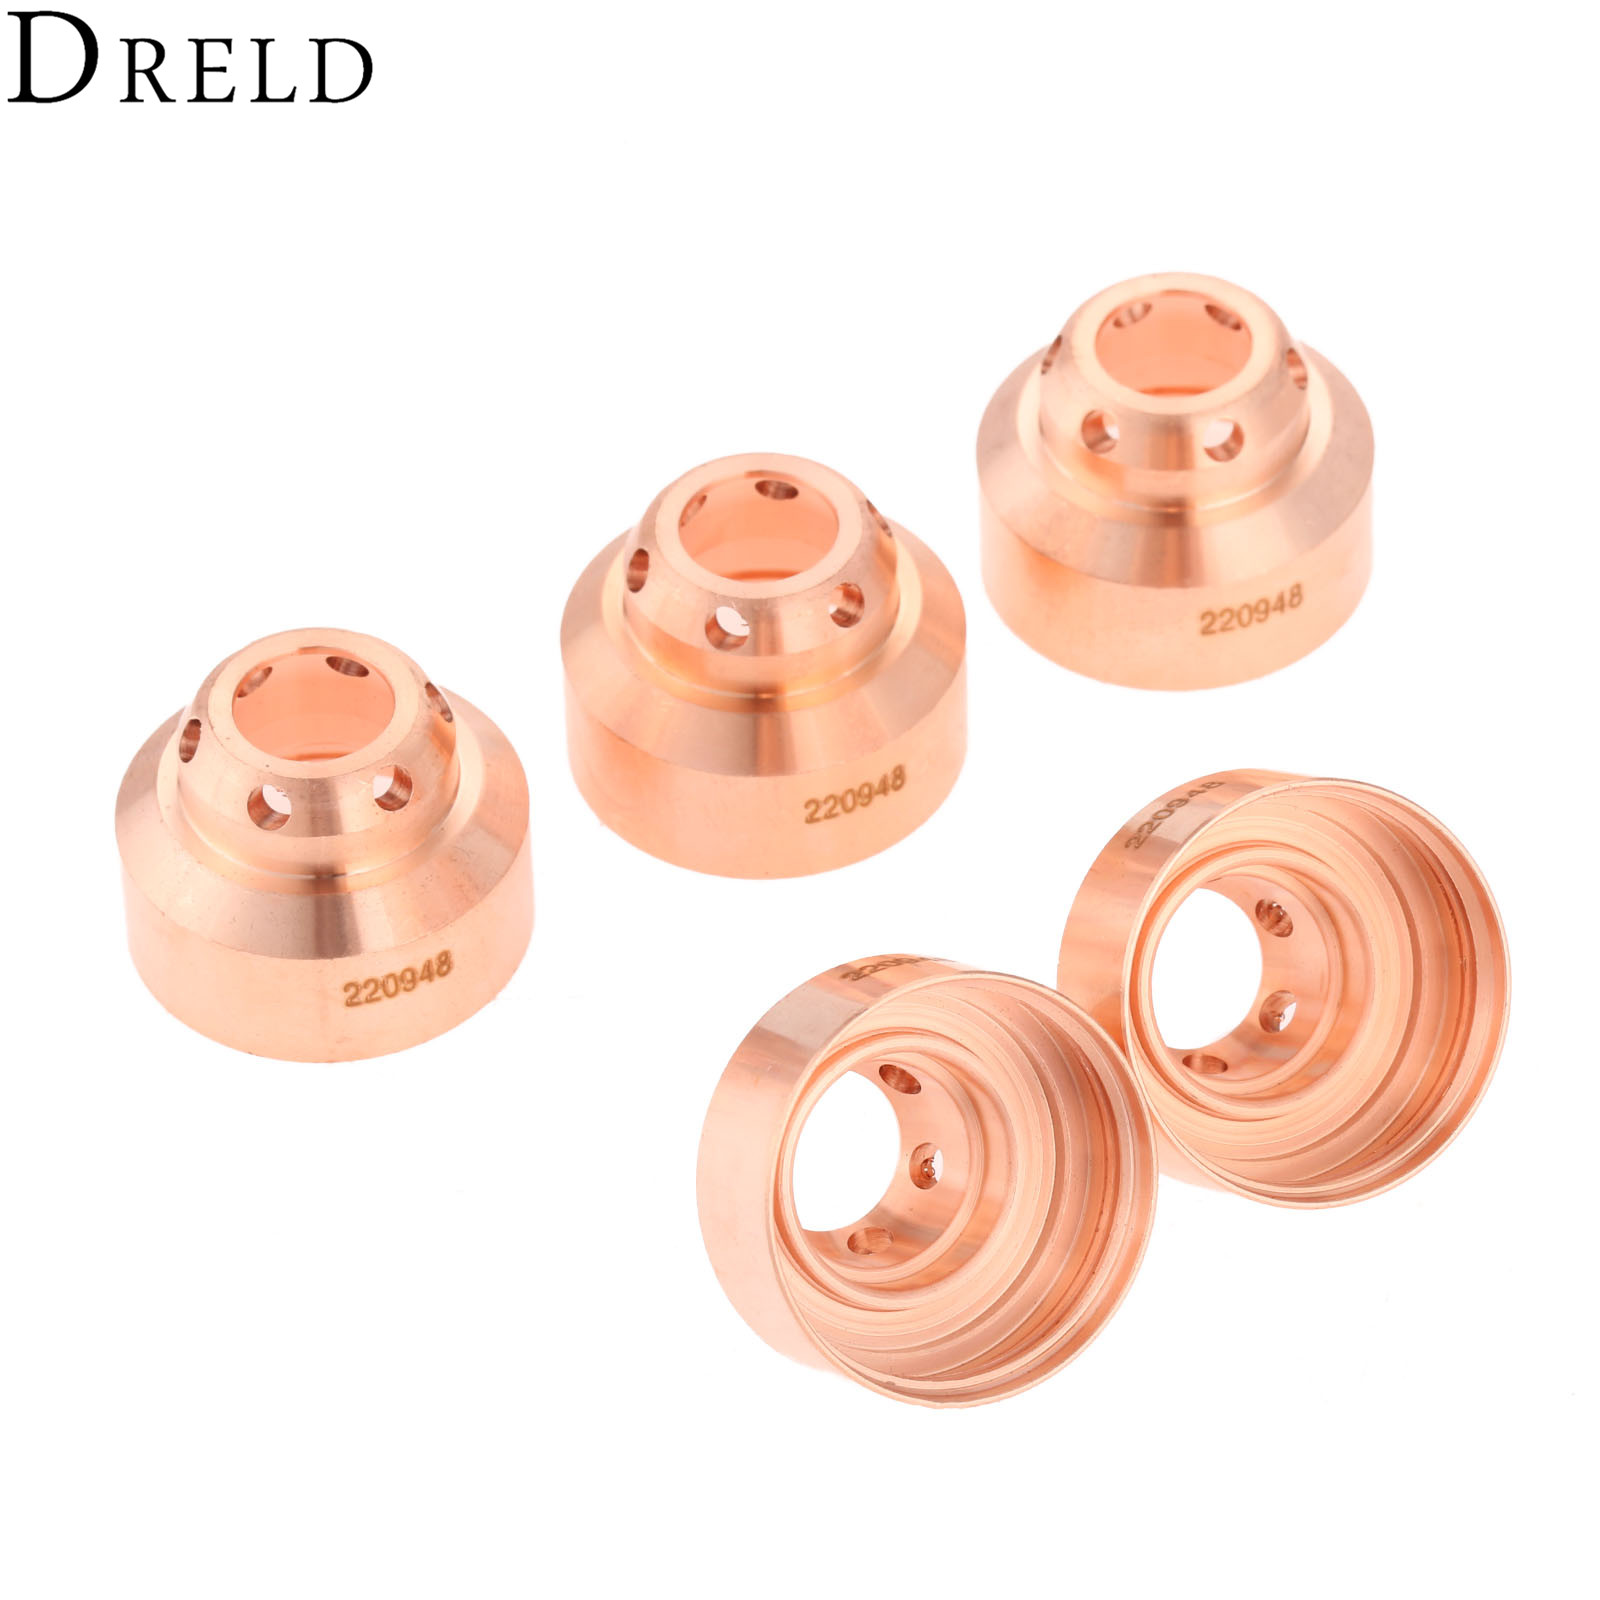 Image 2 - DRELD 5Pcs 45A Plasma Shield 220948 Fit For 65/85/105 Plasma Cutting Torch Consumables Welding Soldering Supplies ReplacementWelding Nozzles   -